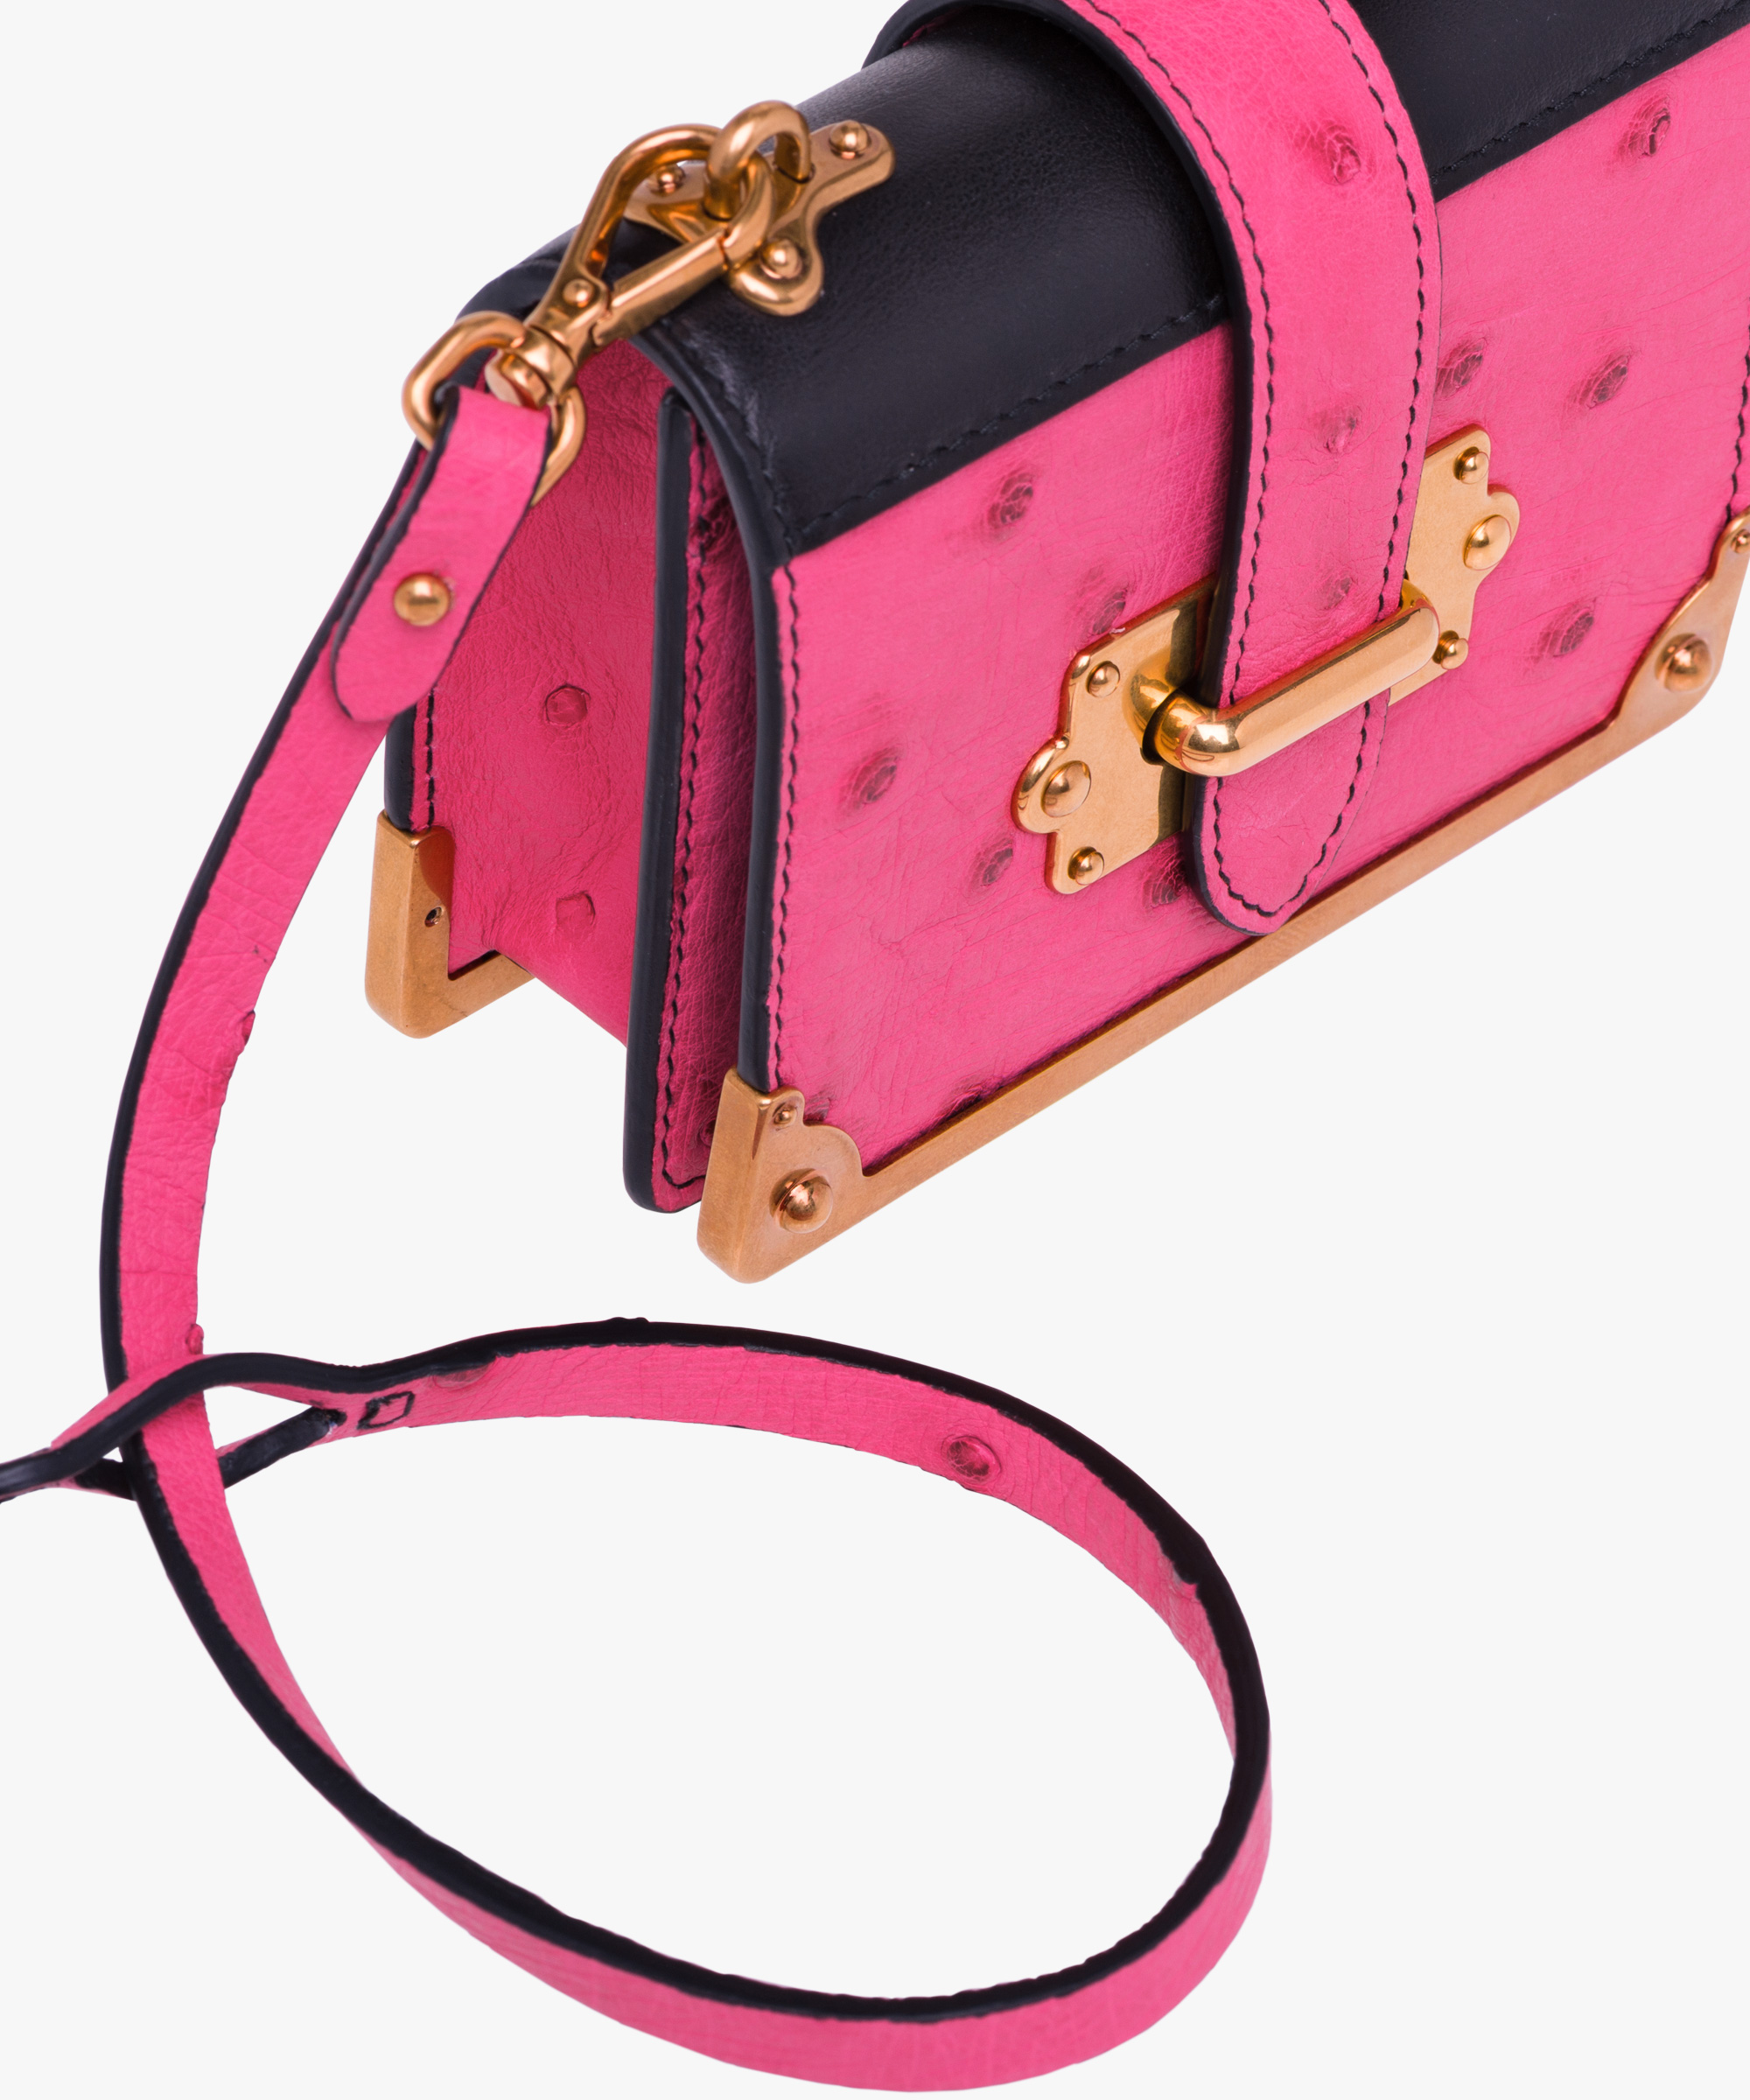 45be1dfa68e8 ... Micro Cahier Bag Prada FUCHSIA/BLACK ...